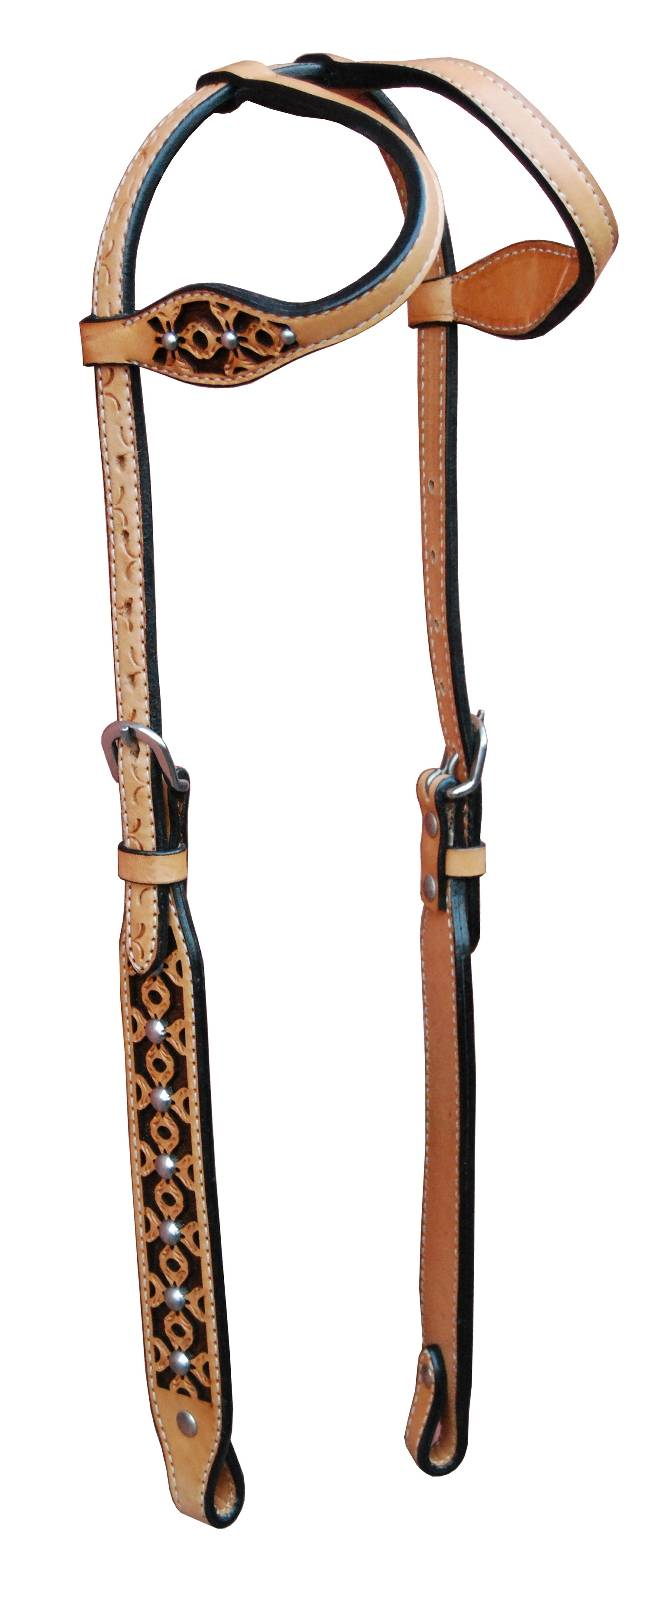 Turn-Two Double Ear Headstall - Ponderosa